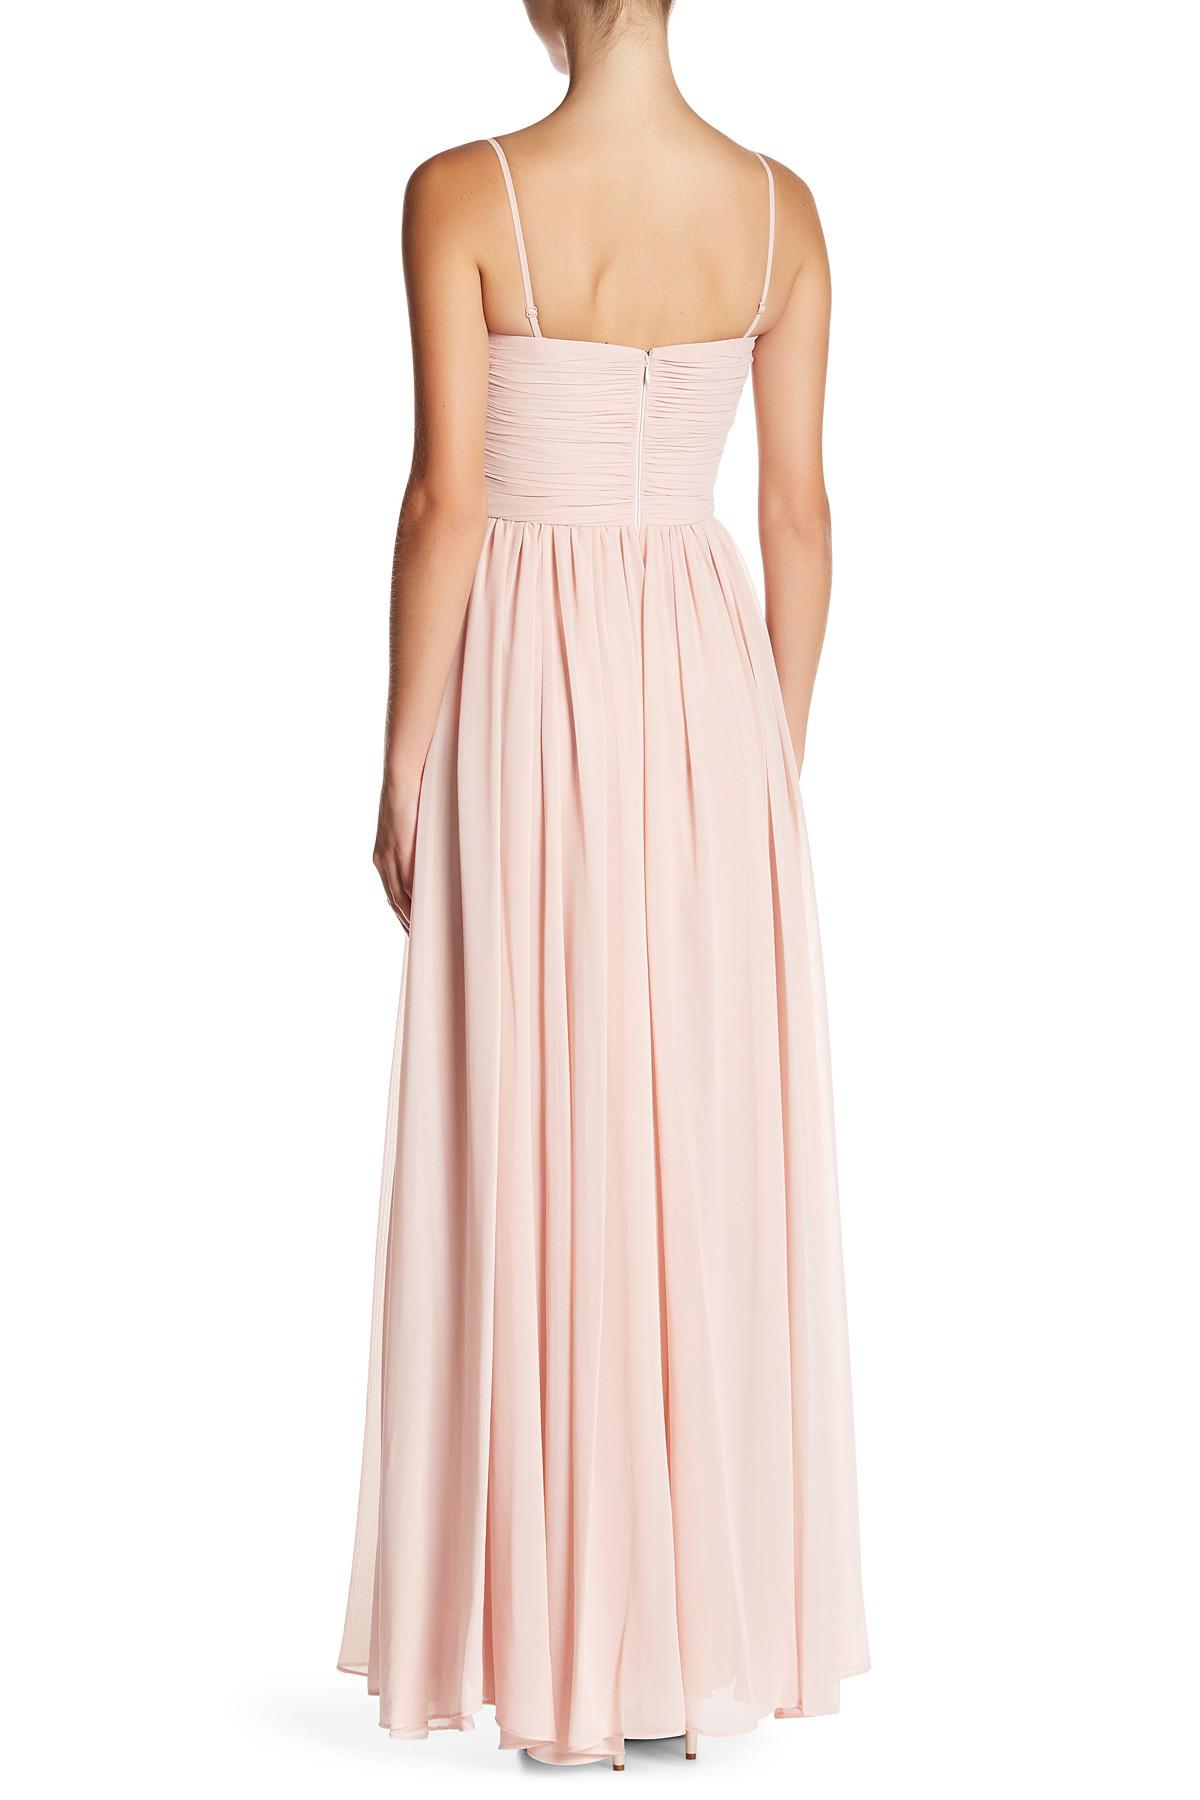 b901acb880eed Lyst - Vera Wang Strapless Chiffon Gown in Pink